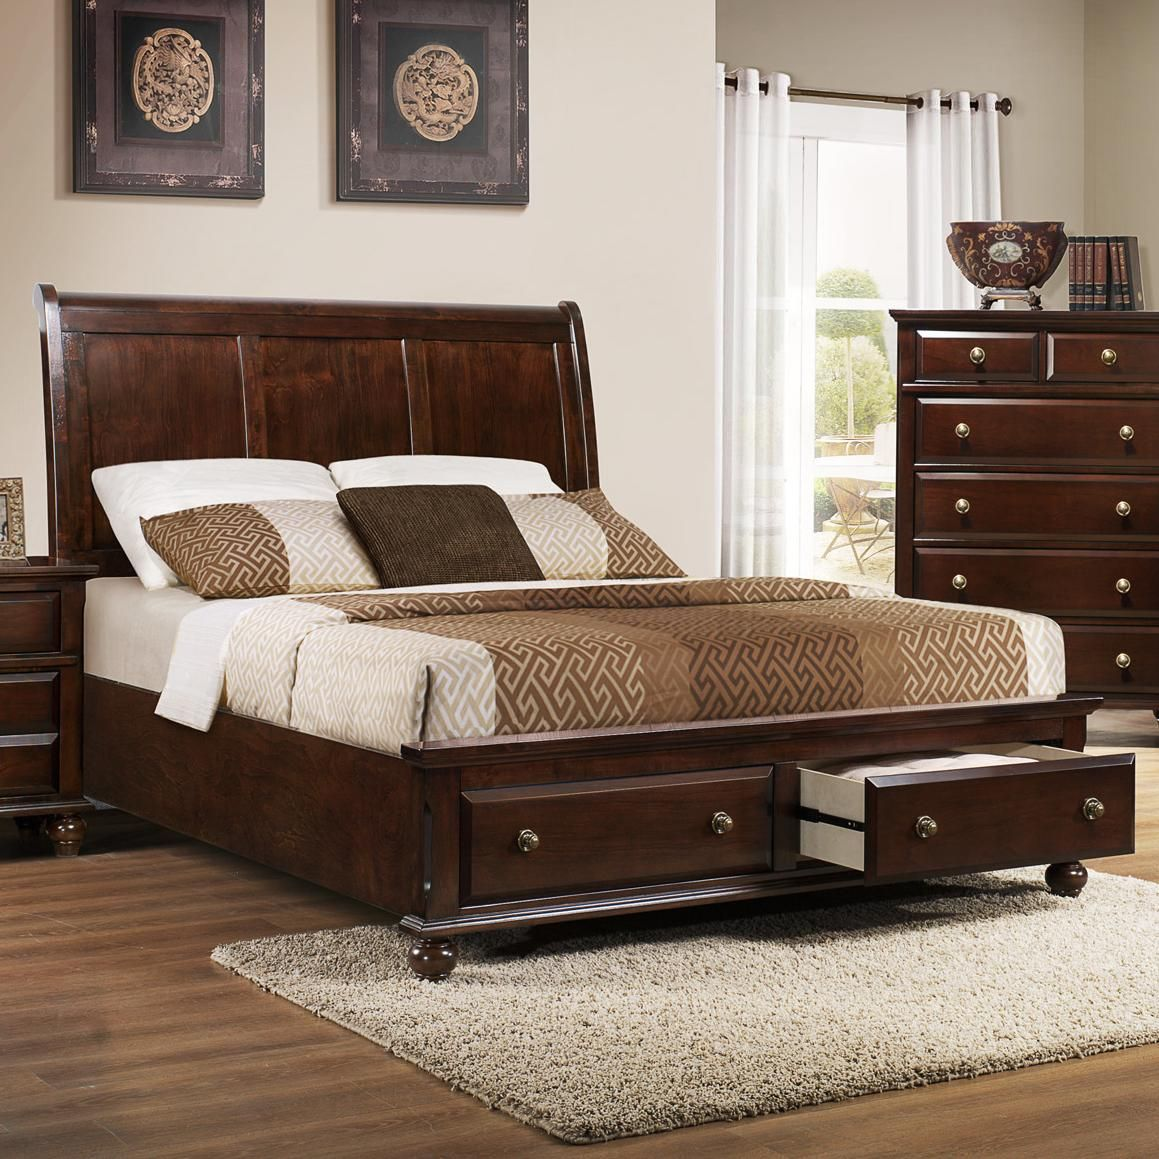 portsmouth b 6075 king panel bed with storage footboard by crown